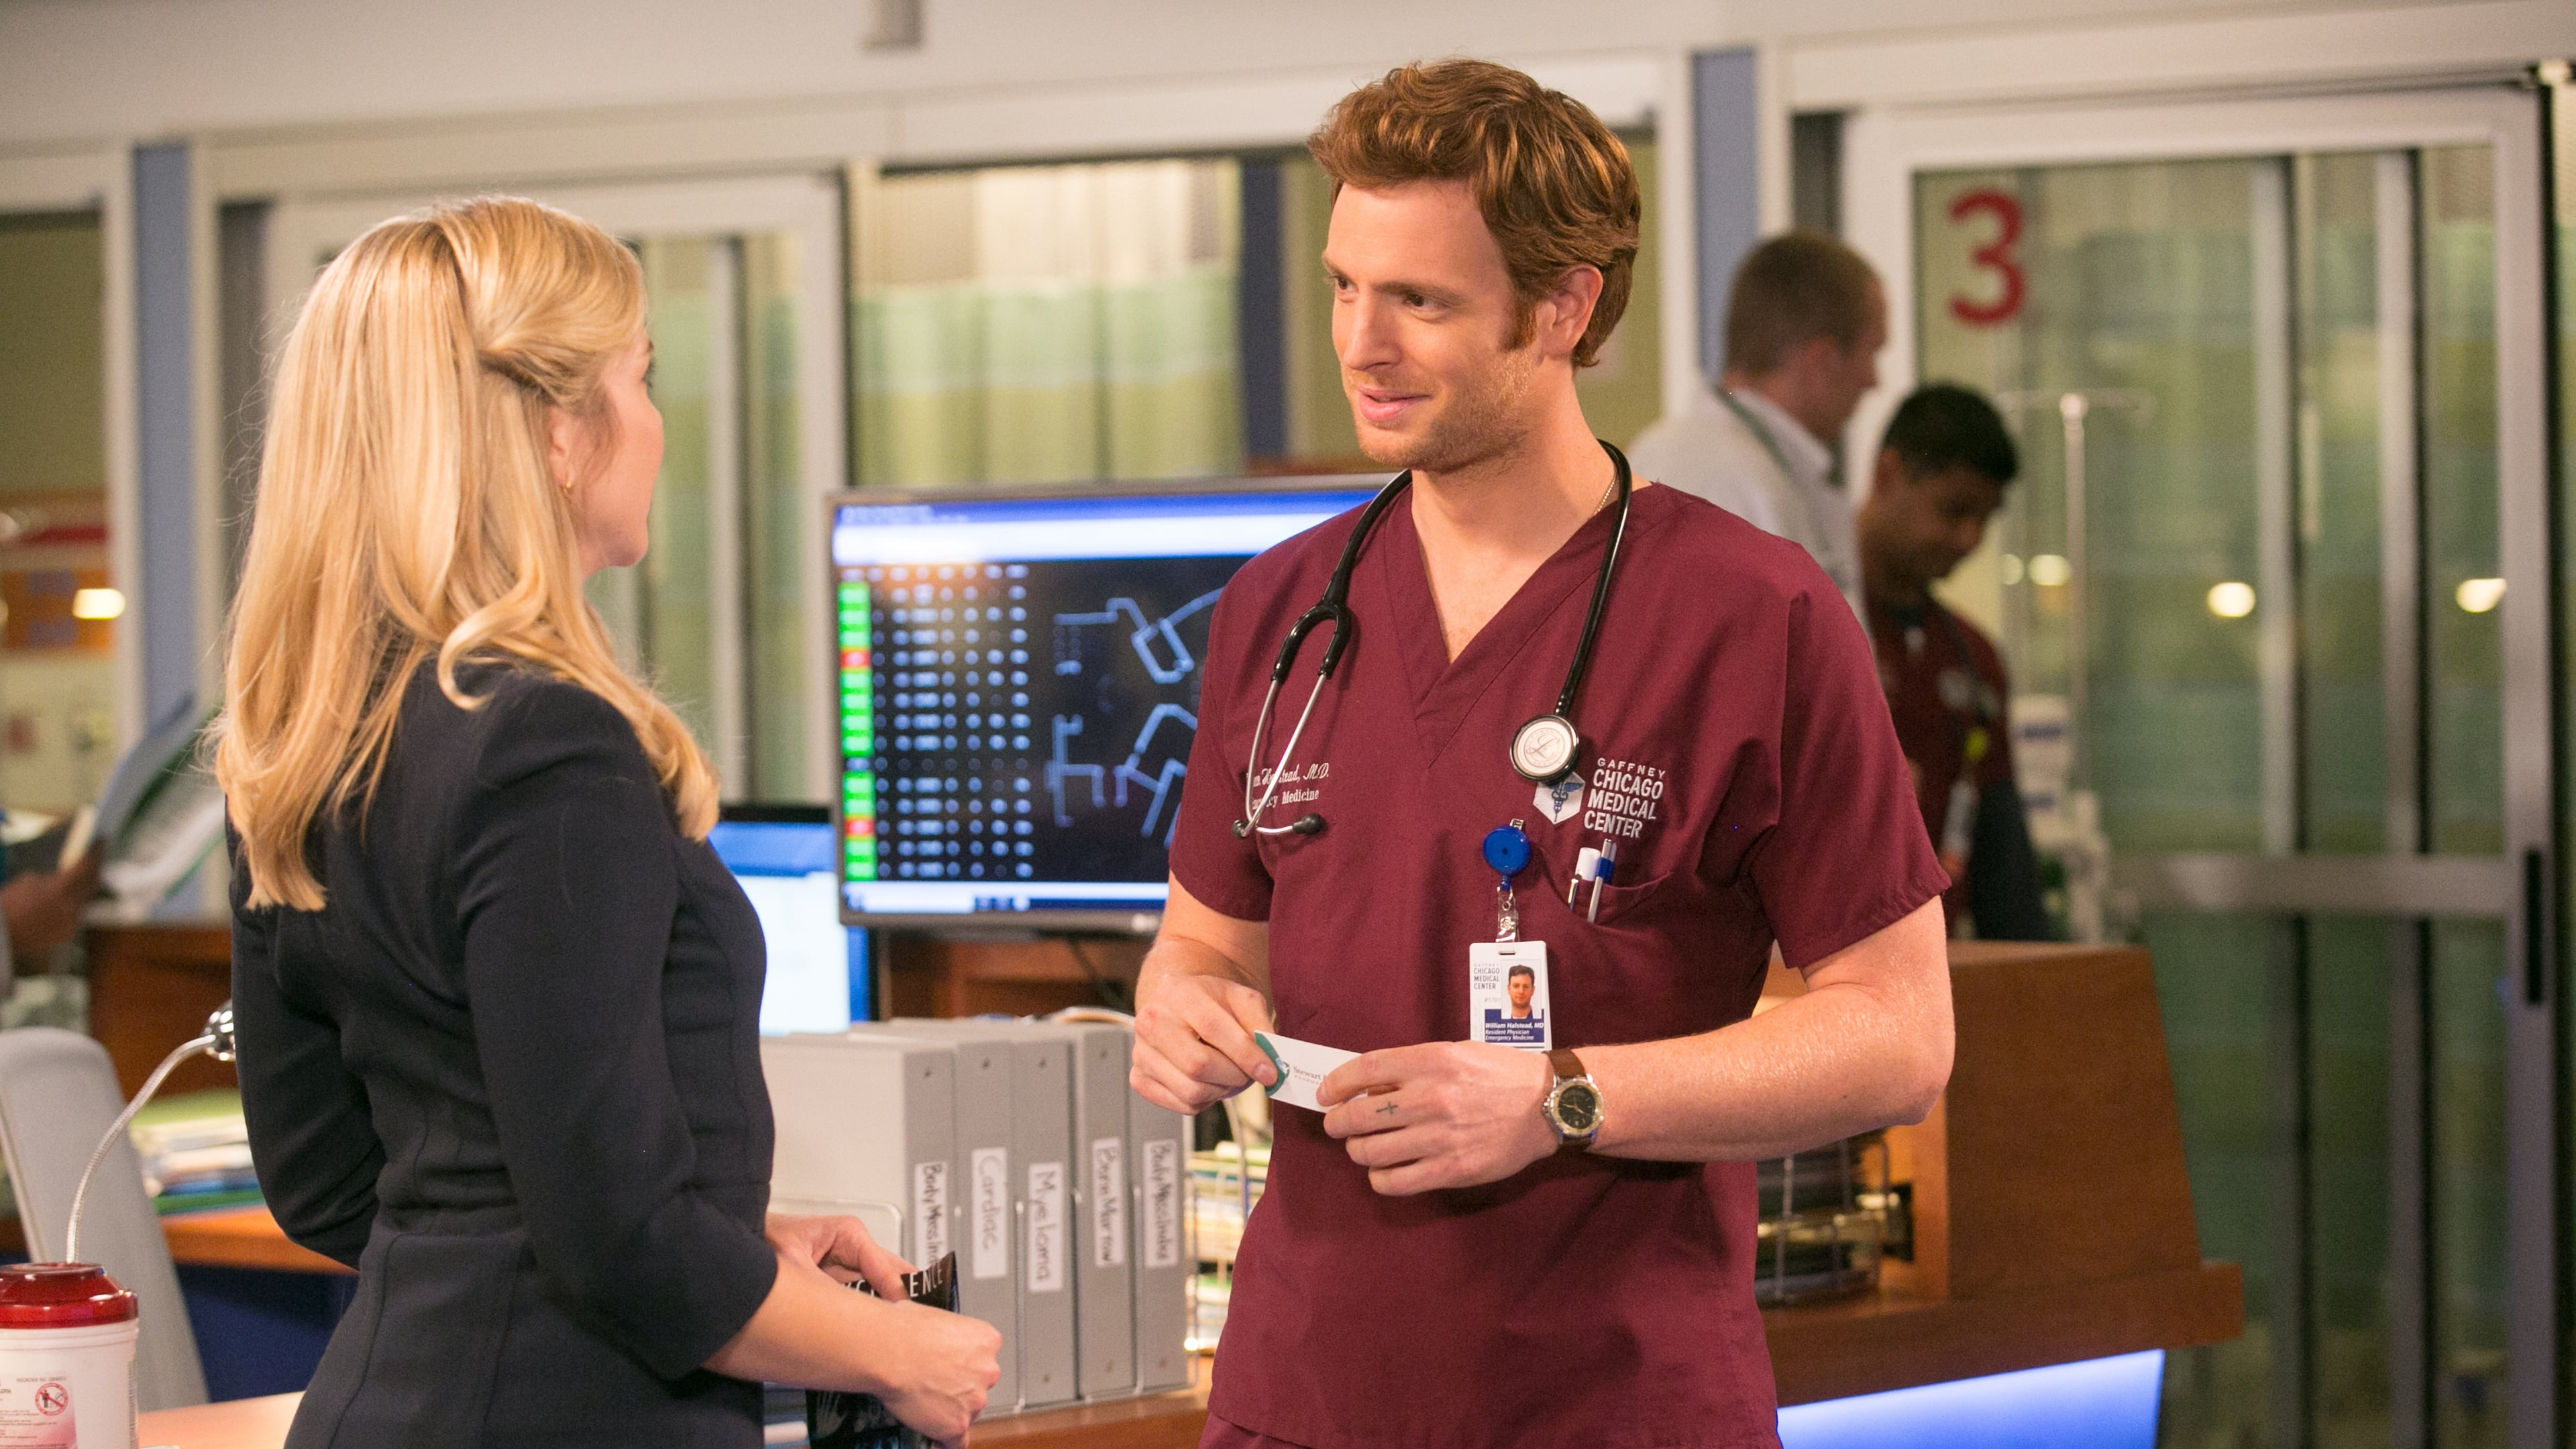 Who is dating in real life from the chicago med on tv